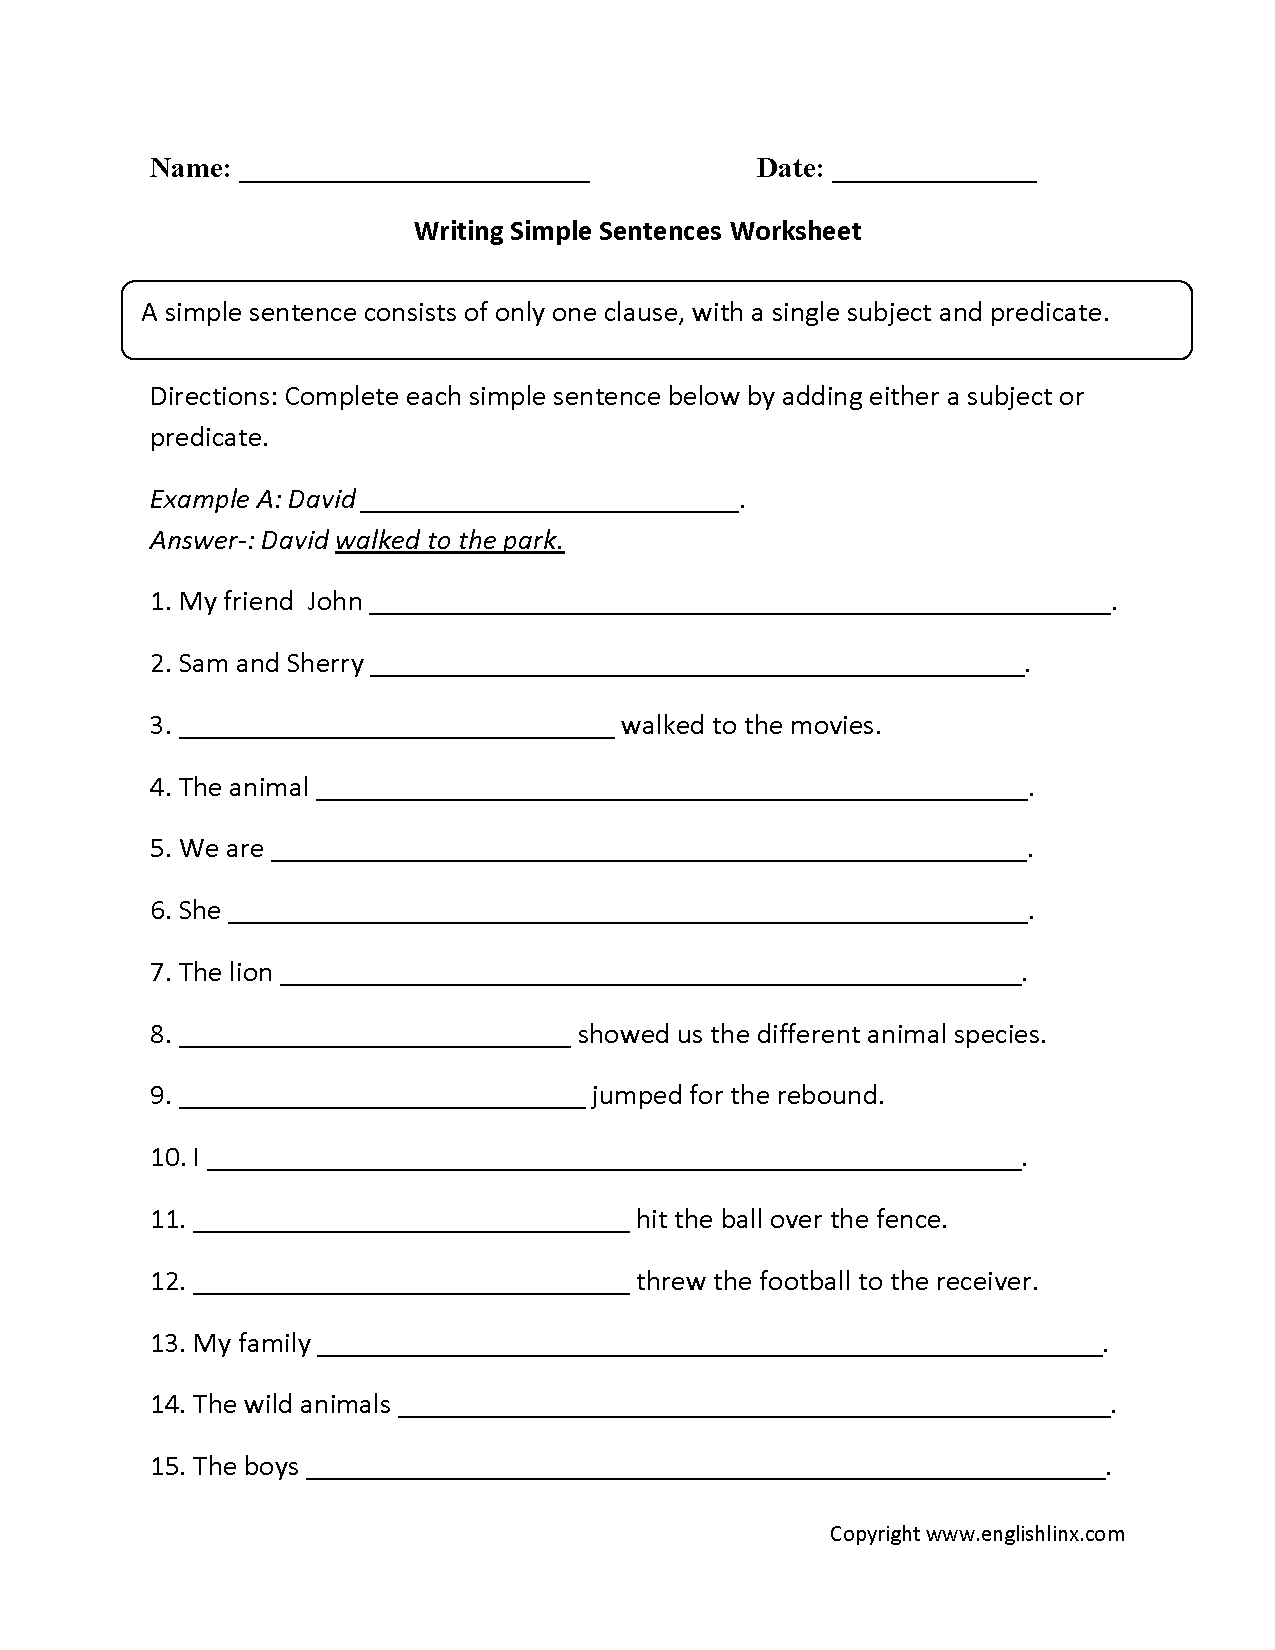 Worksheets Writing Complete Sentences Worksheets sentences worksheets simple writing with worksheet